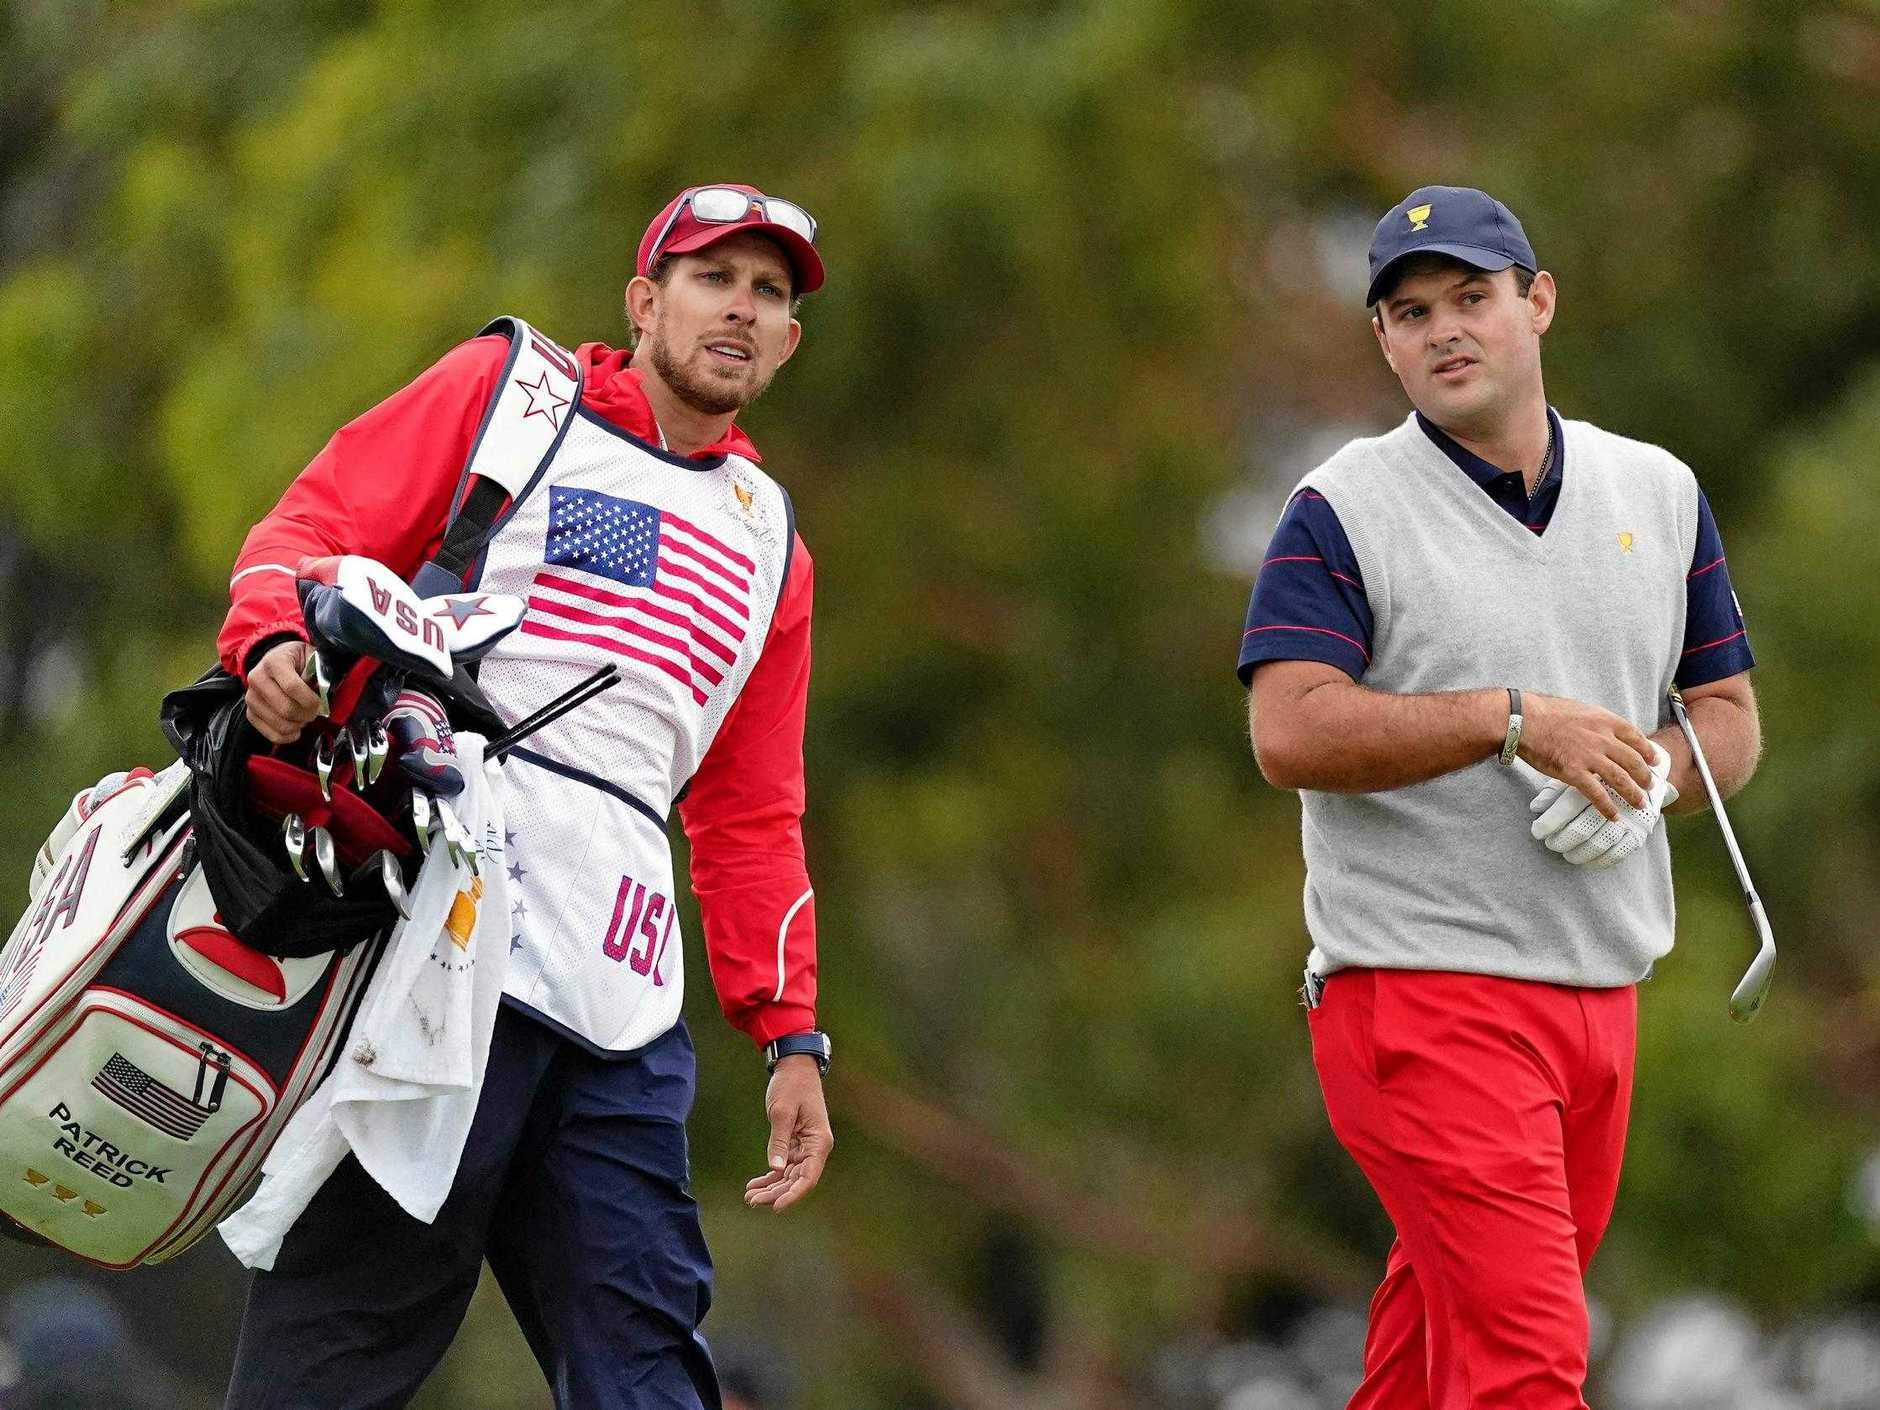 Caddie Kessler Karain and Patrick Reed of the US team look on during the Saturday four-ball matches at the Presidents Cup in Melbourne. Picture: Scott Barbour/AAP